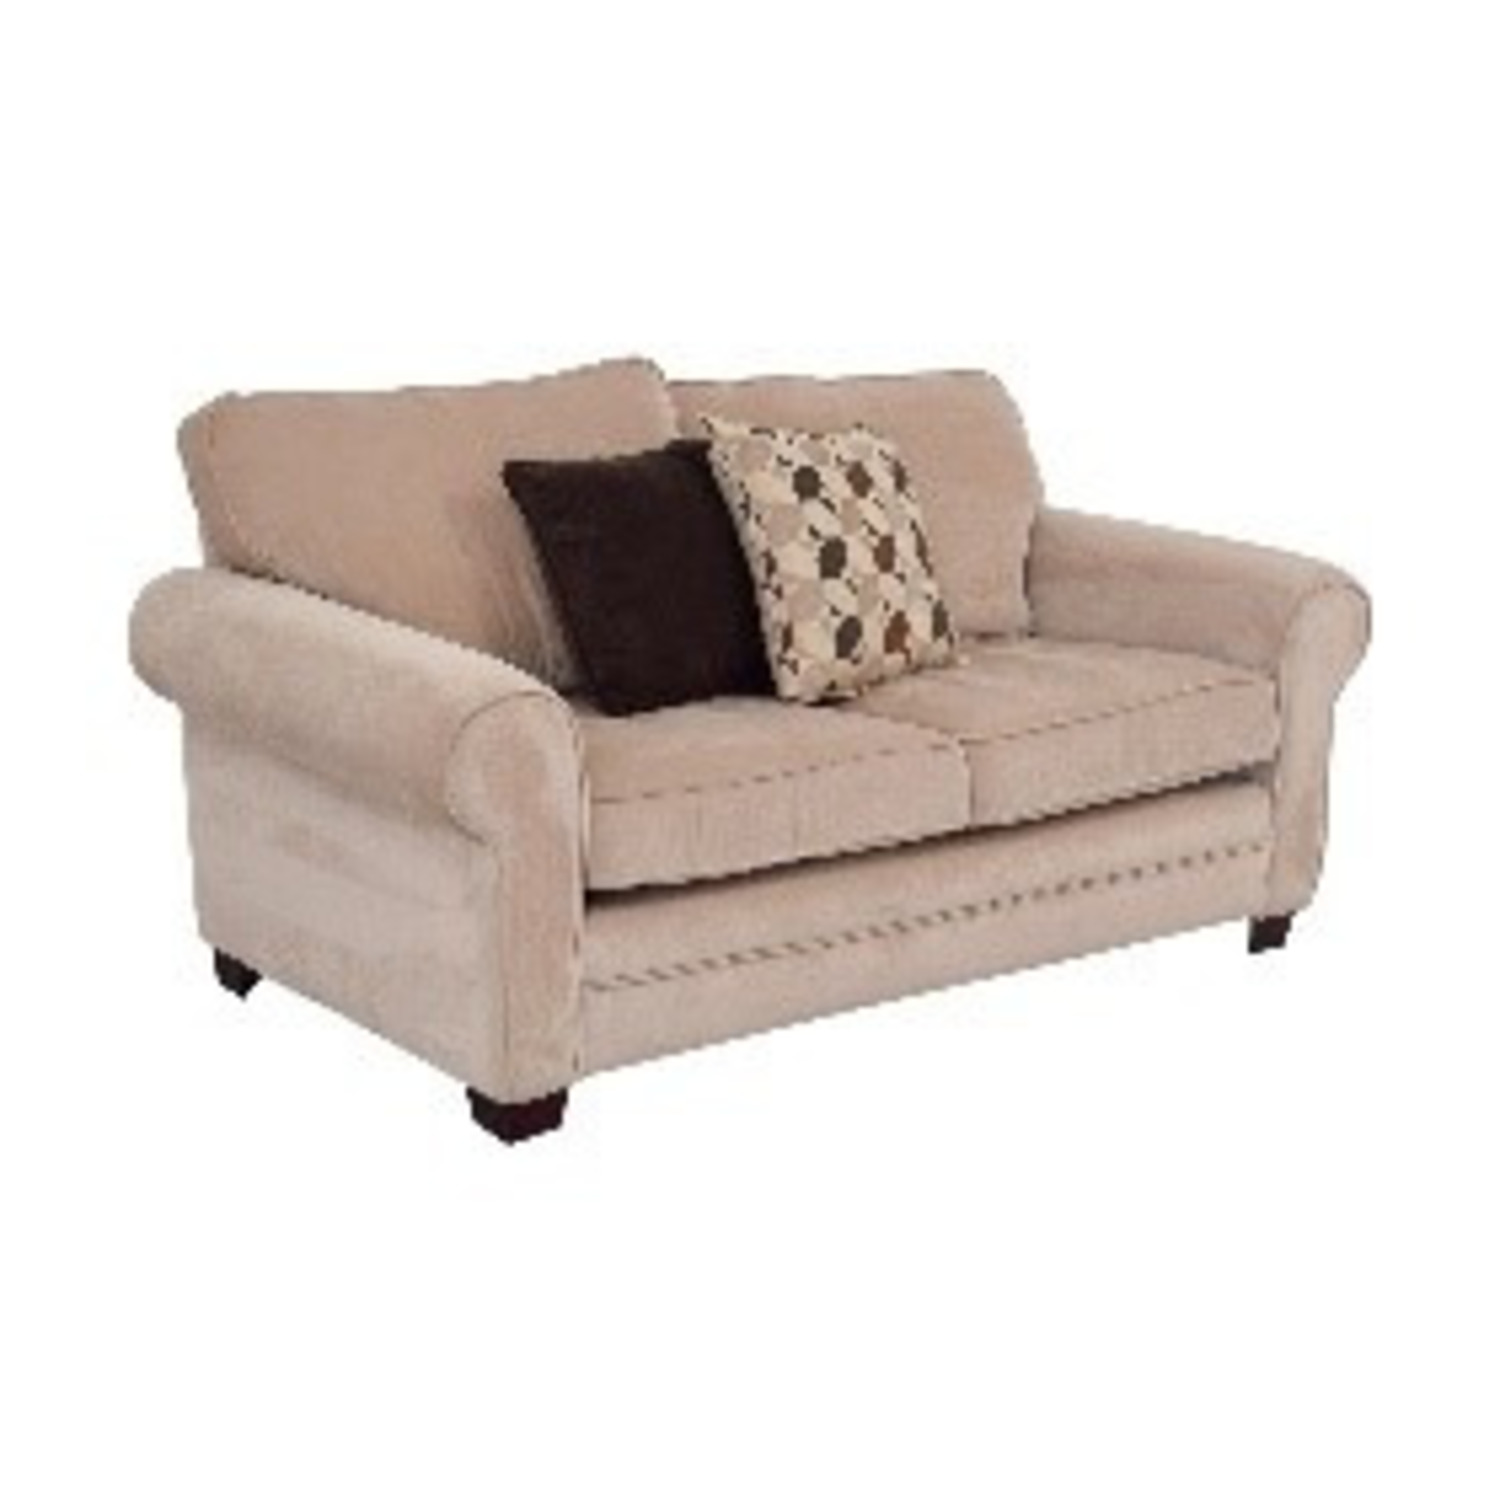 Bobs Maggie 72 roll-arm 2-cushion Loveseat - image-0